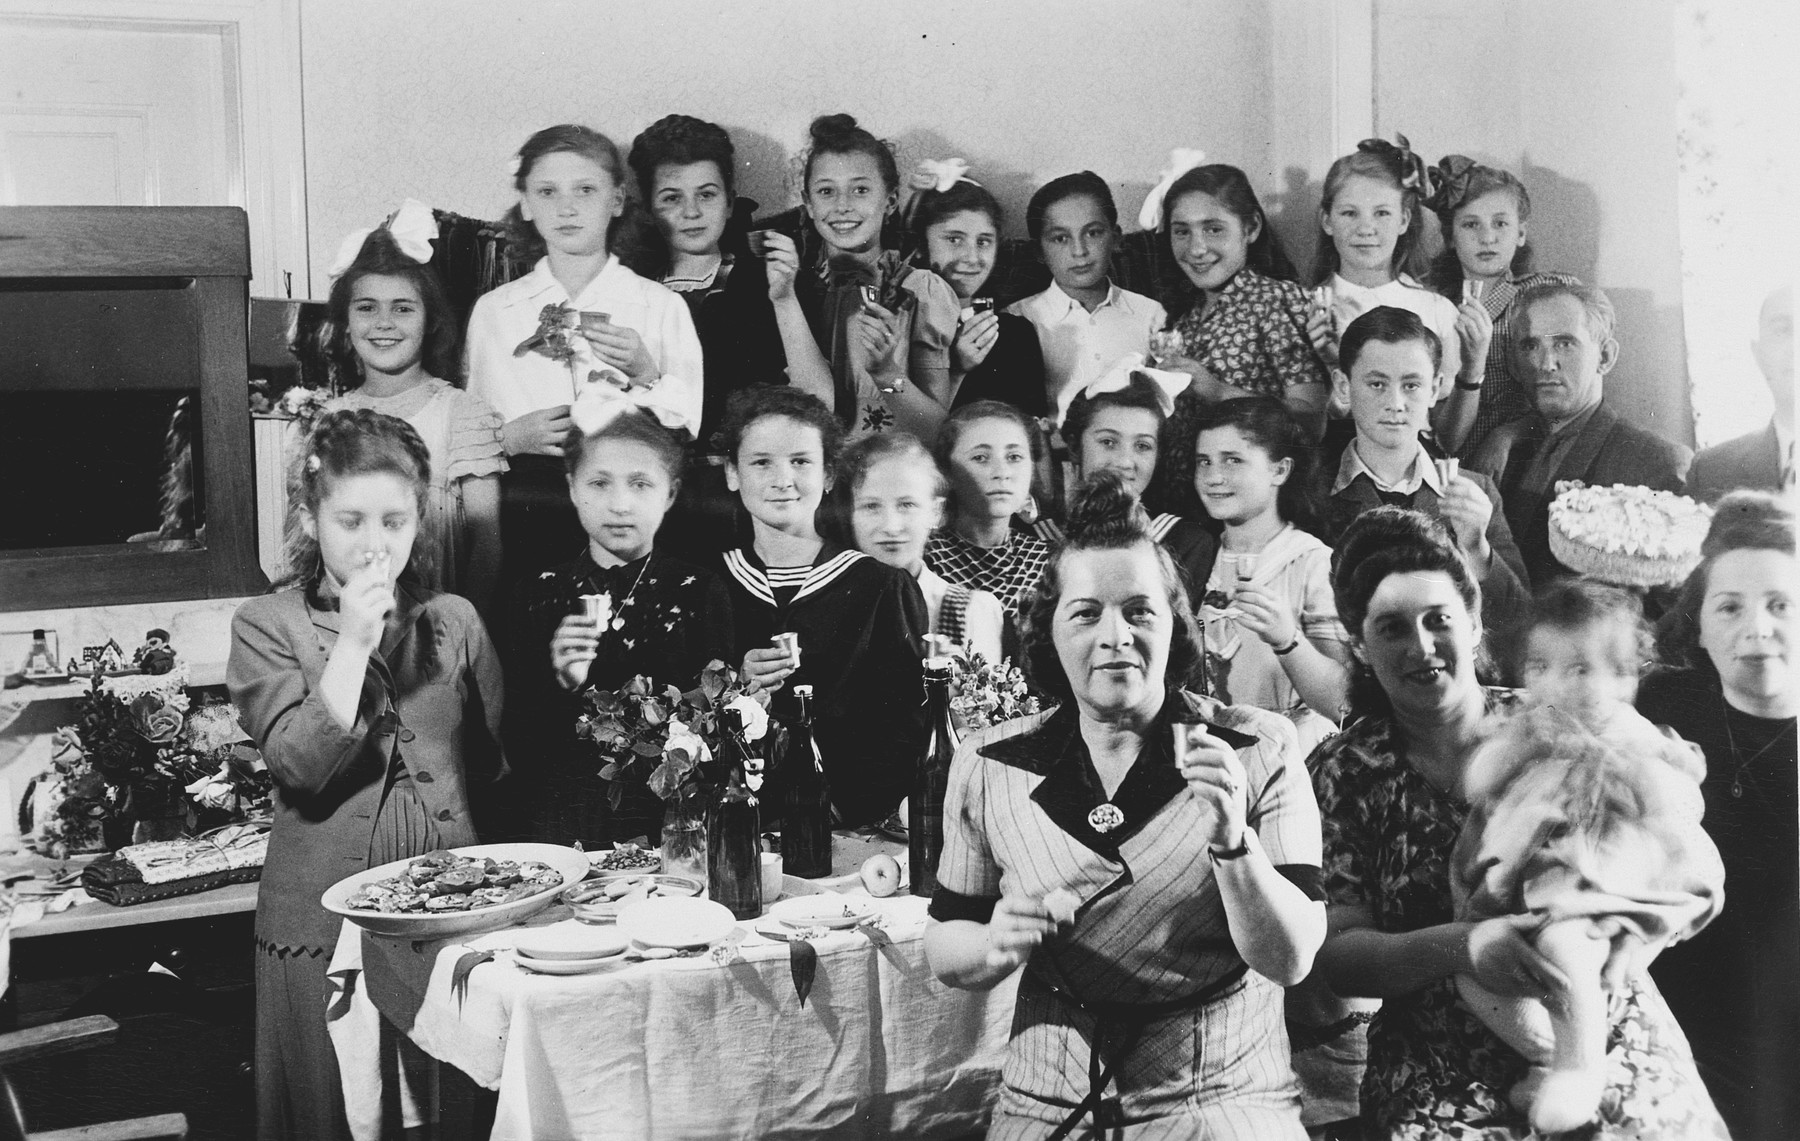 School children hold small silver cups during a celebration in the Stuttgart displaced persons camp.  Among those pictured in the middle row, Irka Hechtkopf, second from the left; Rywka Weinberg, fourth from the left; Hela Huberman, seventh from the left and Lova Warszayczyk (the donor), second from the right.